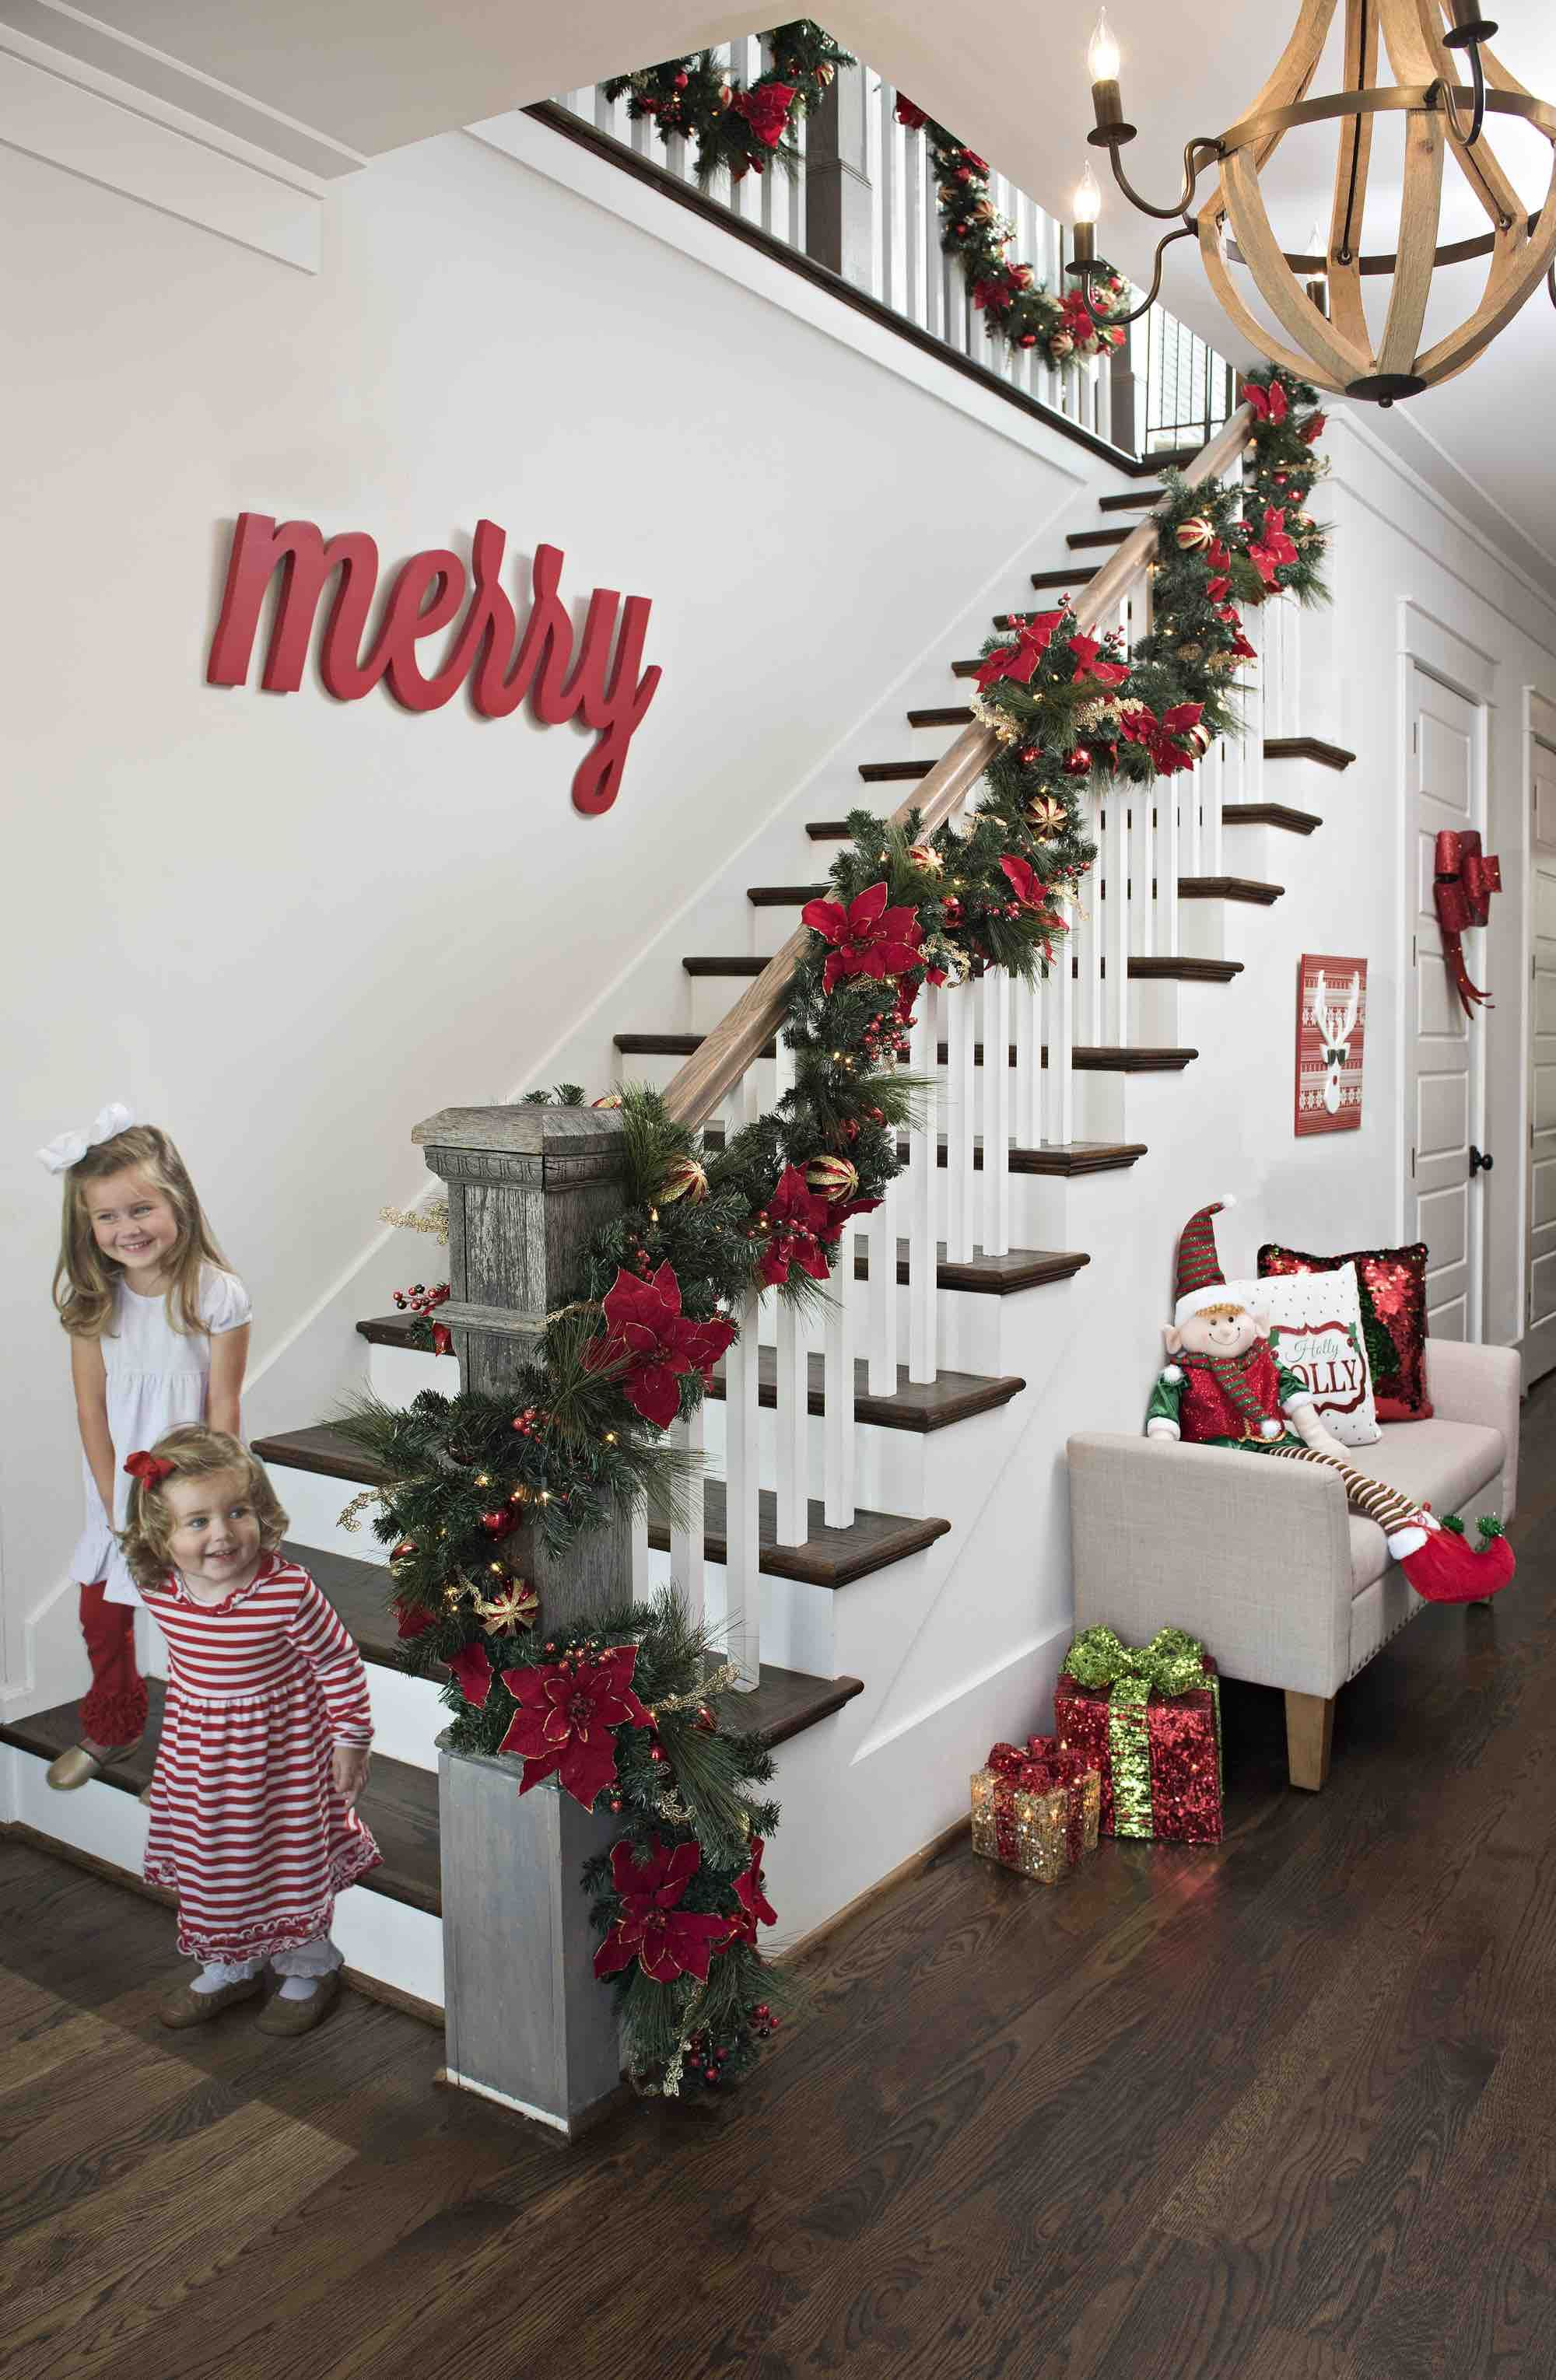 Deck the halls with gorgeous holiday decor